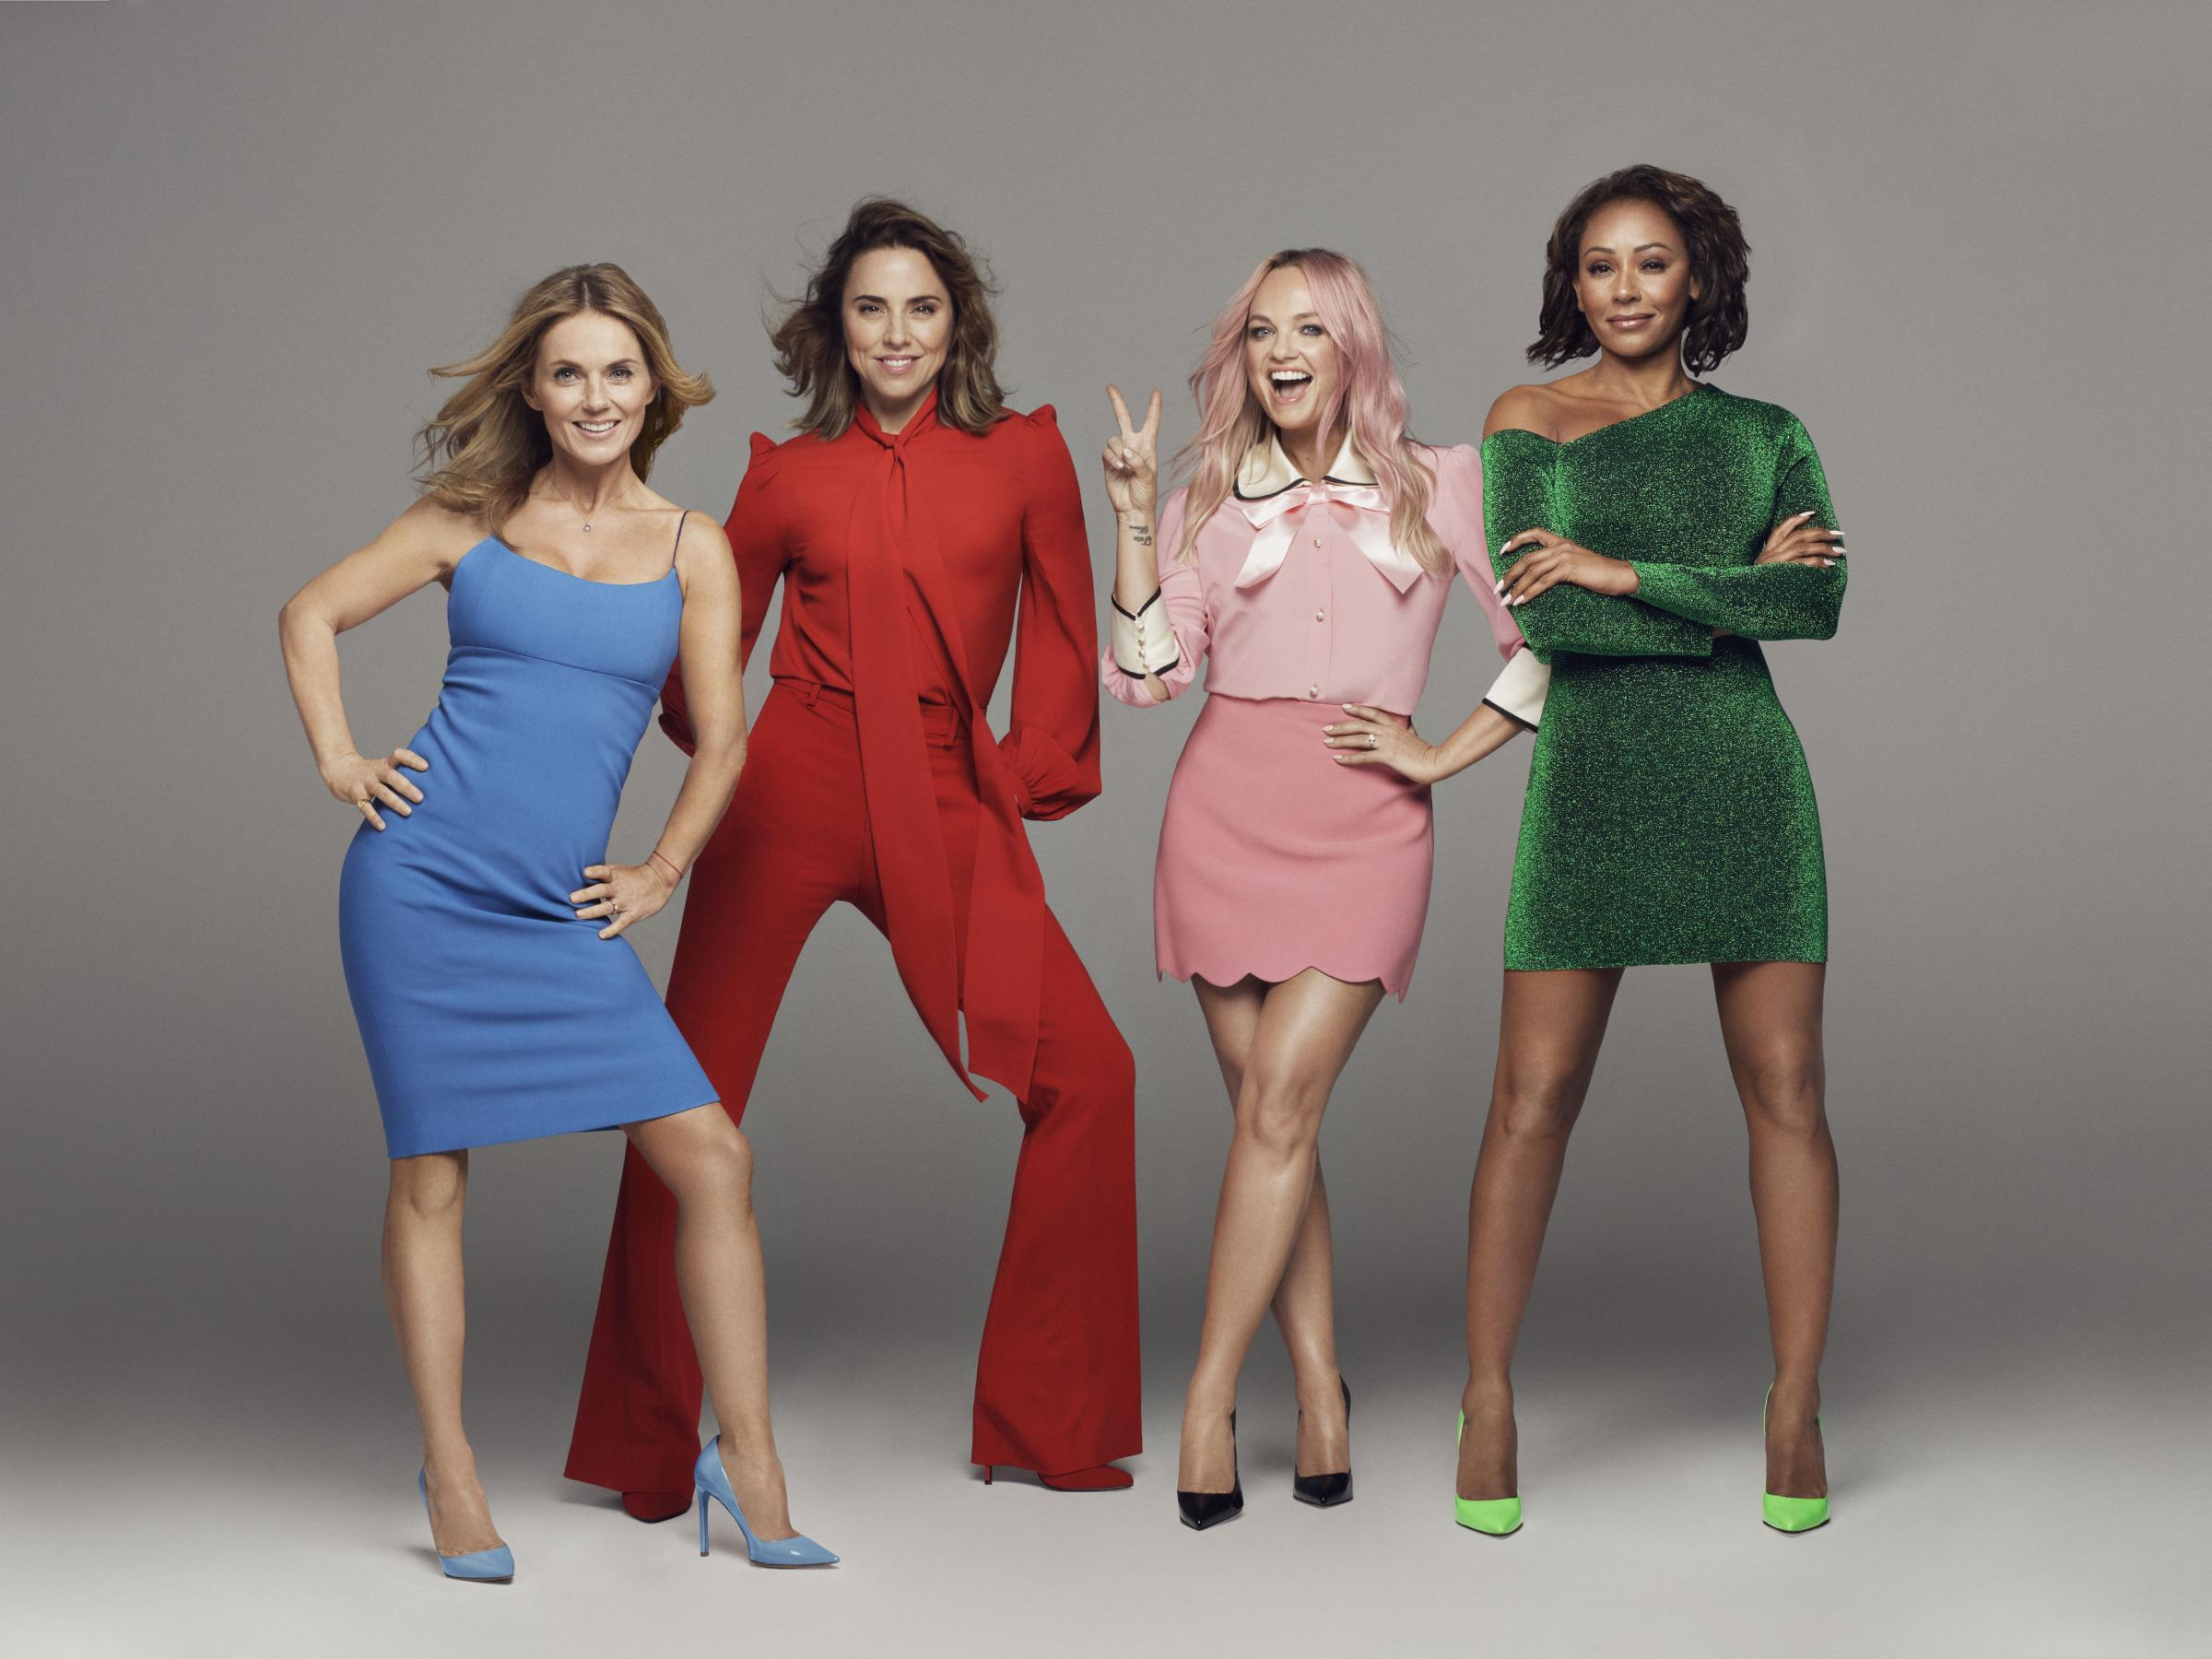 Spice Girls announce UK tour including Manchester date